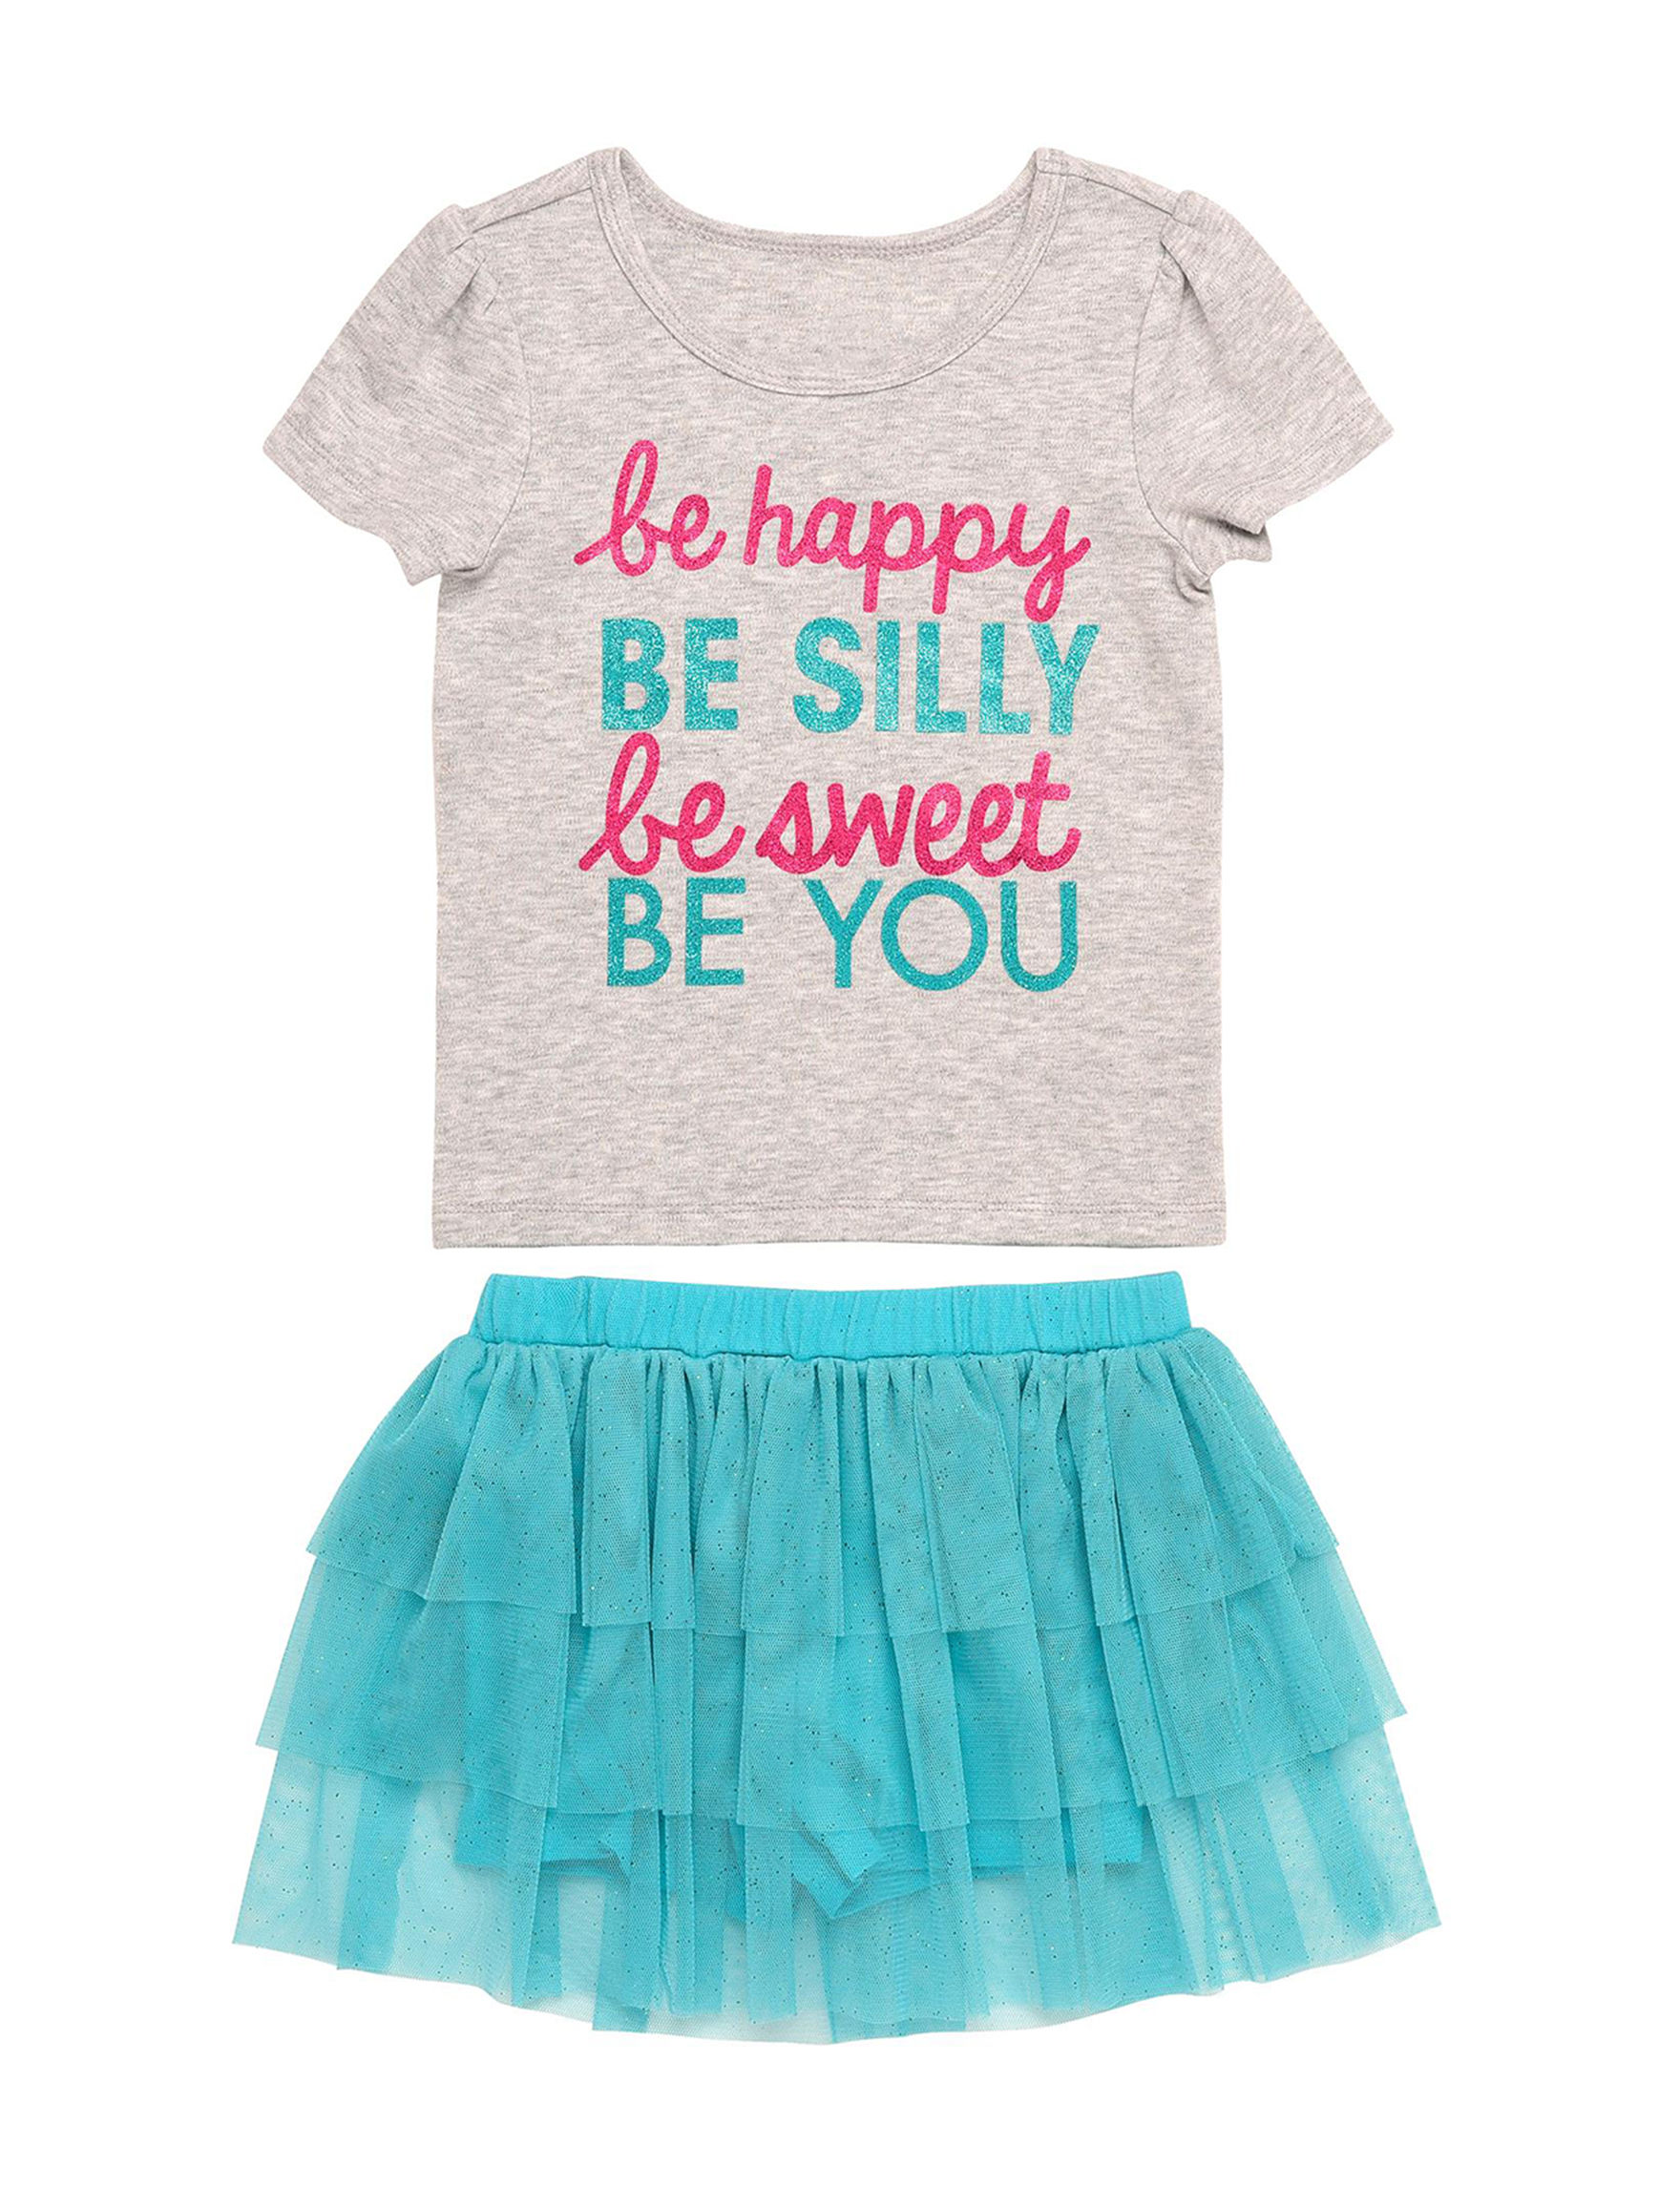 Babies With Attitude Turquoise / Grey